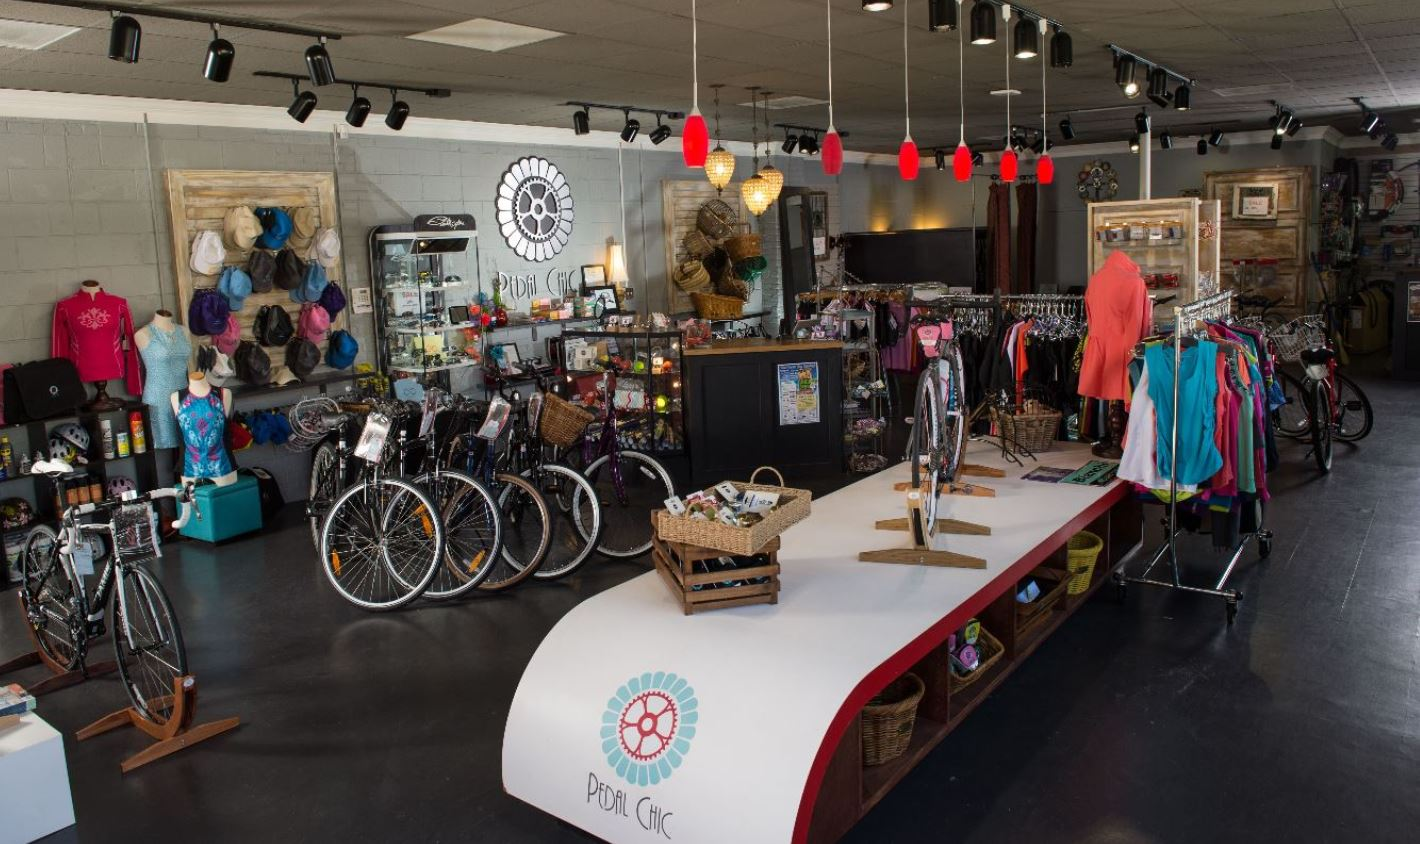 pedal-chic-store